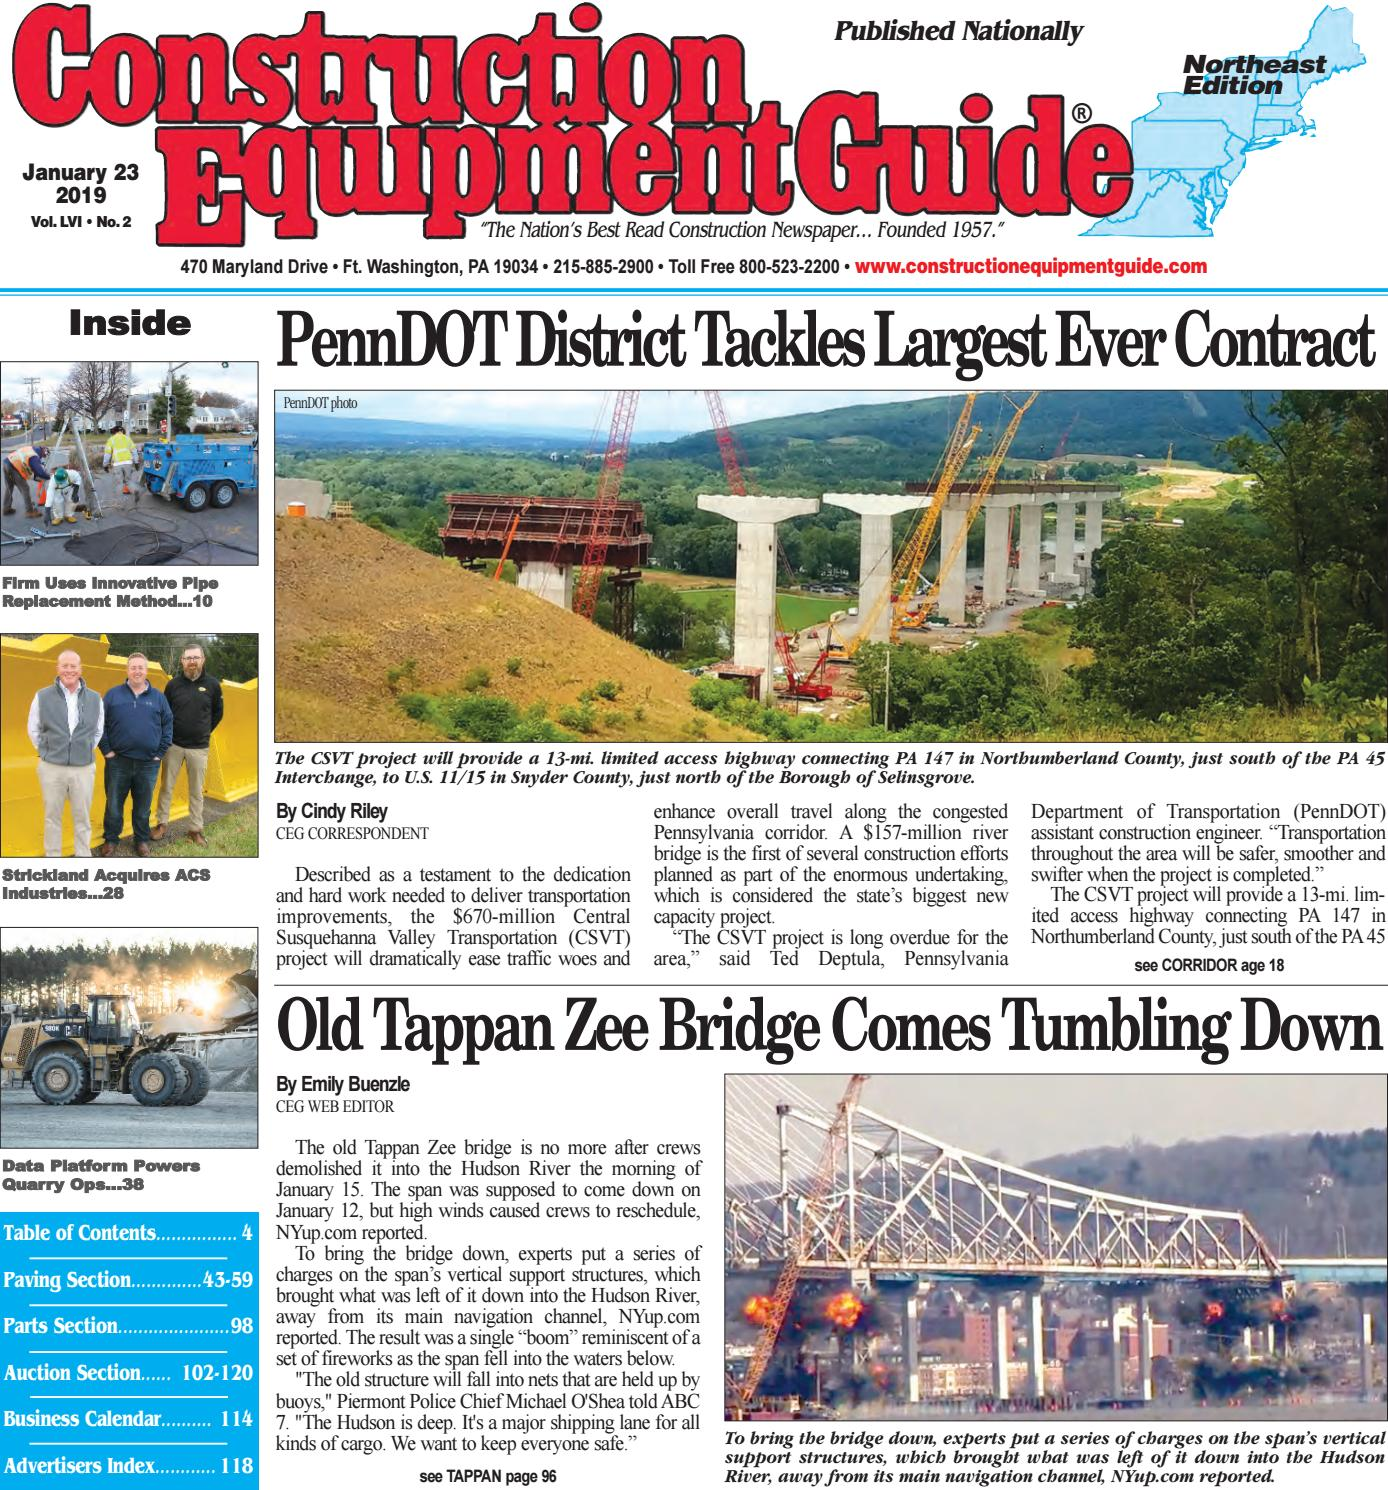 425c2af8588 Northeast 2 January 23, 2019 by Construction Equipment Guide - issuu